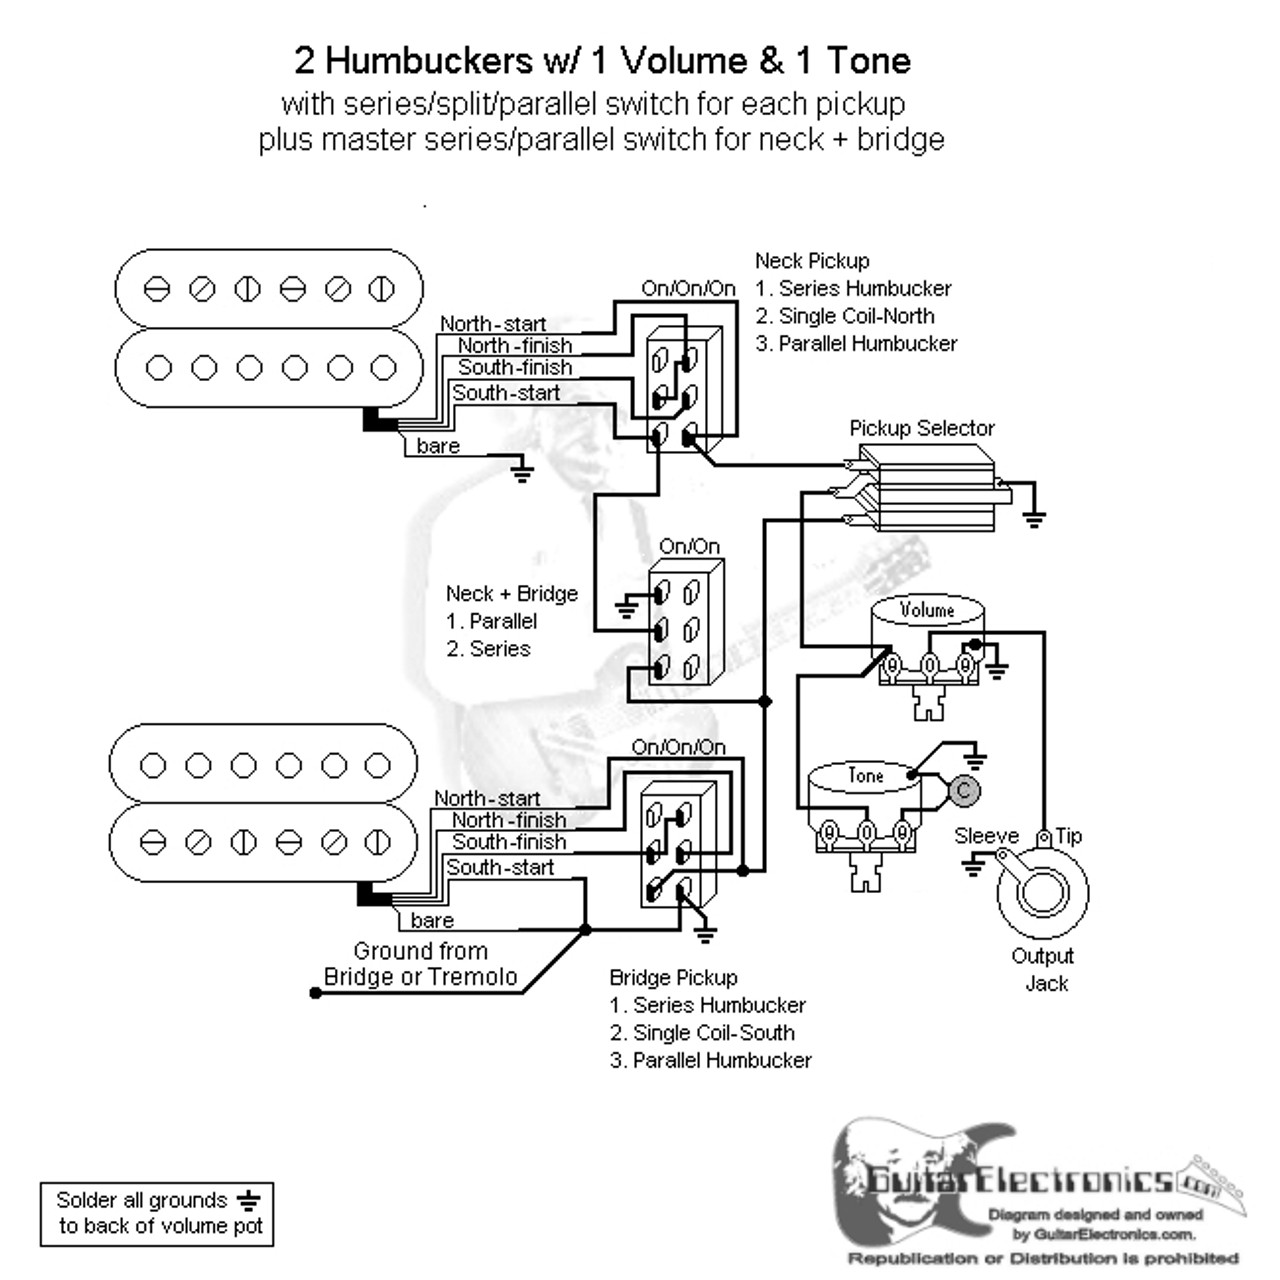 medium resolution of 2 hbs 3 way toggle 1 vol 1 tone series split parallel u0026 master ethernet switch wiring diagram 2 hbs 3 way toggle 1 vol 1 tone series split parallel